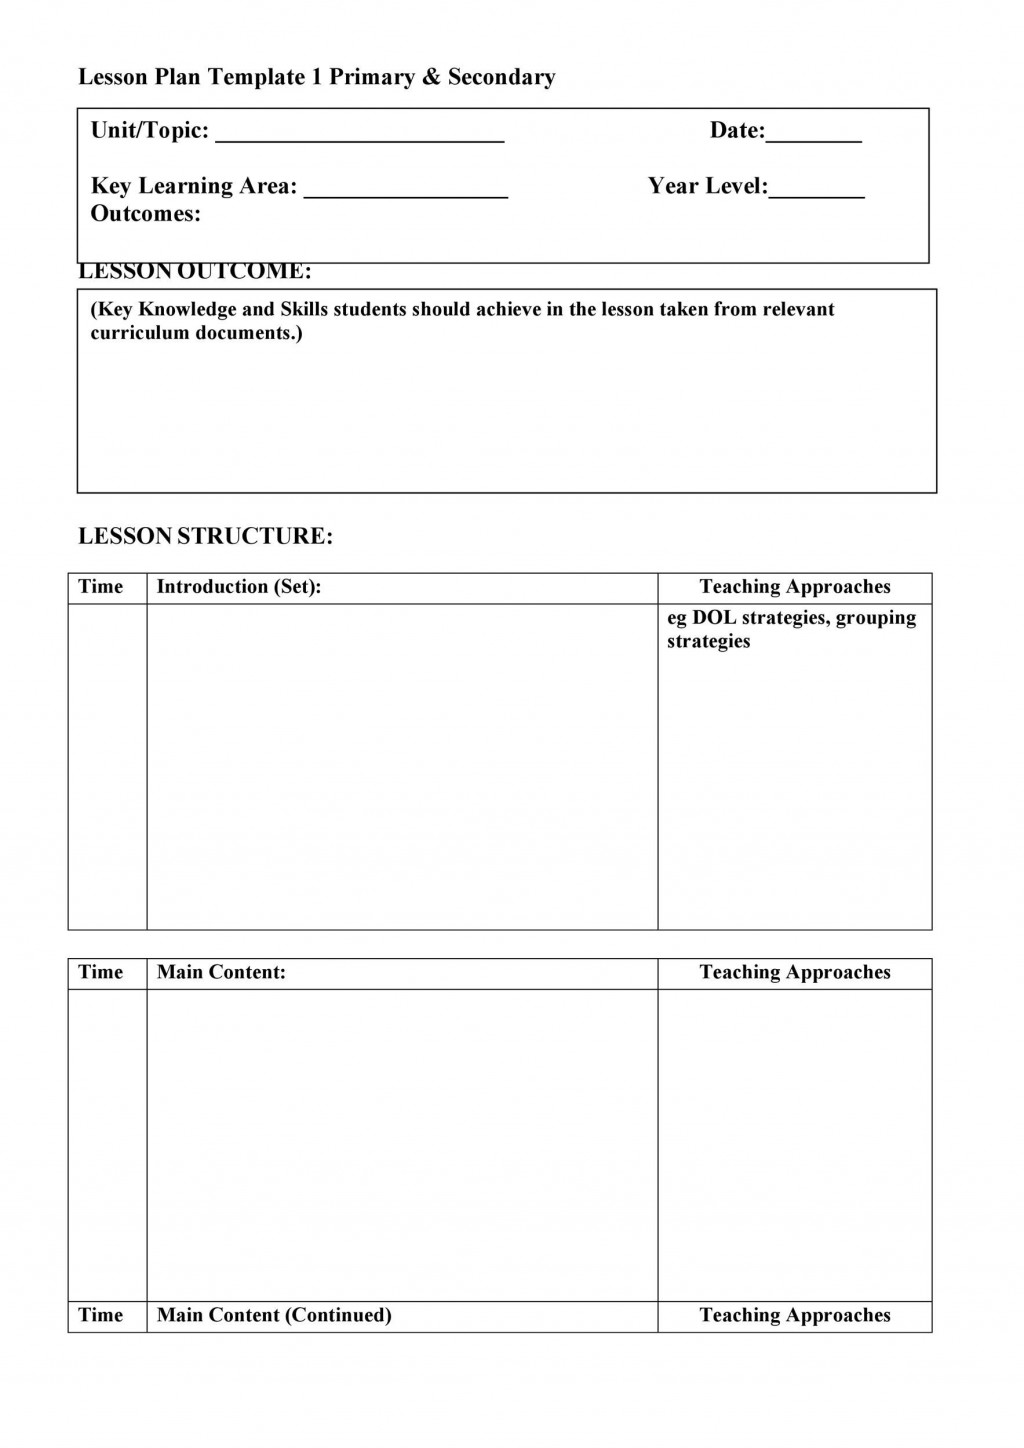 006 Staggering Fillable Lesson Plan Template Free Image  Printable EditableLarge